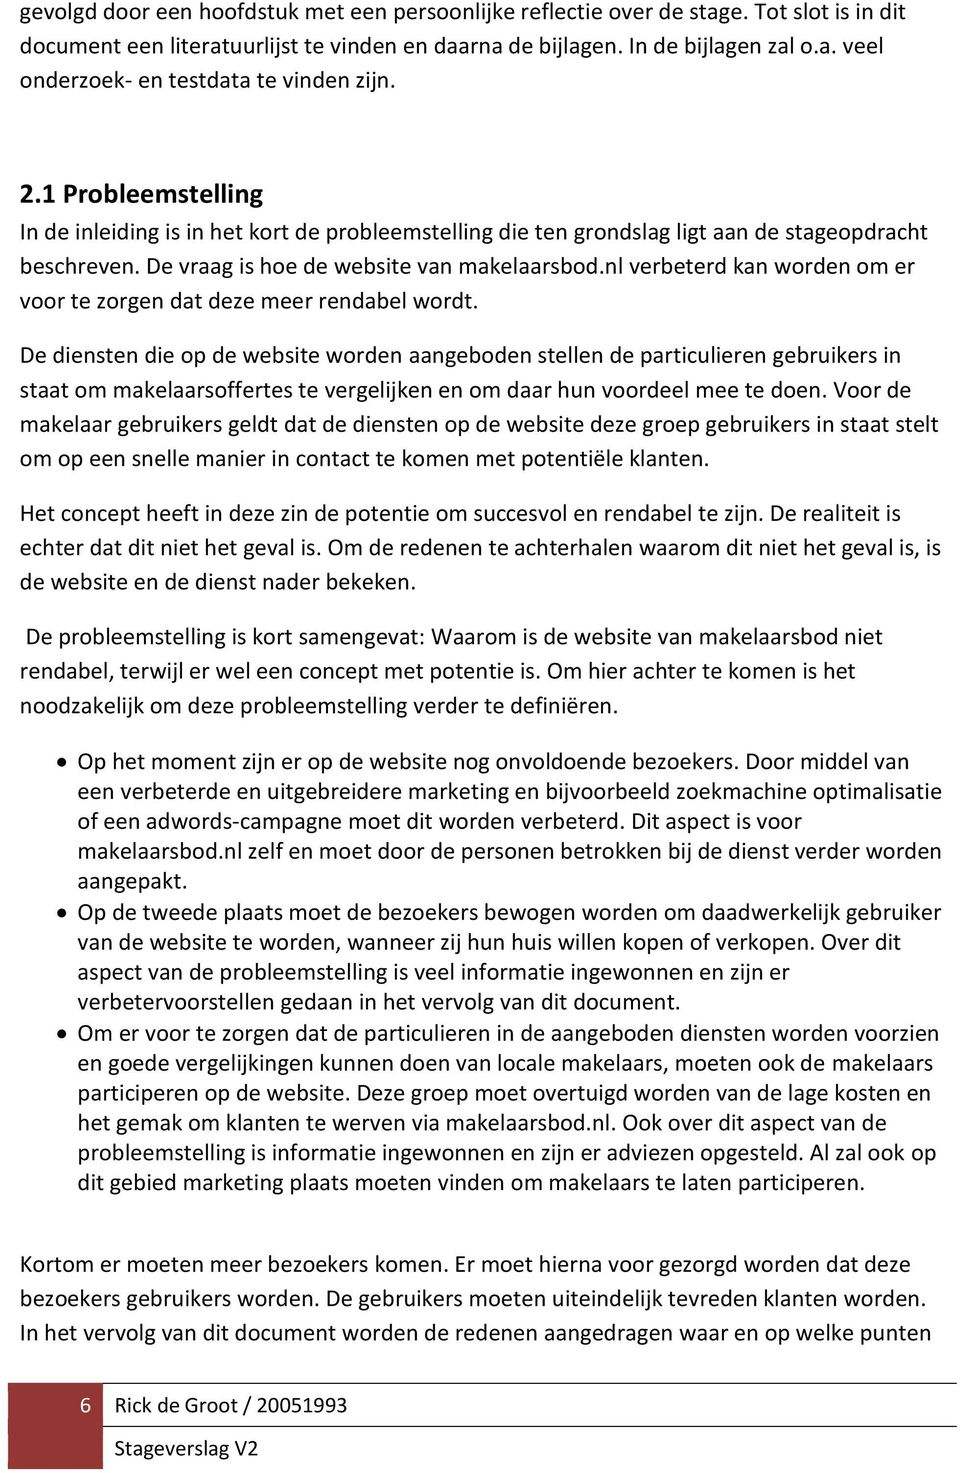 Dit thesis guidelines